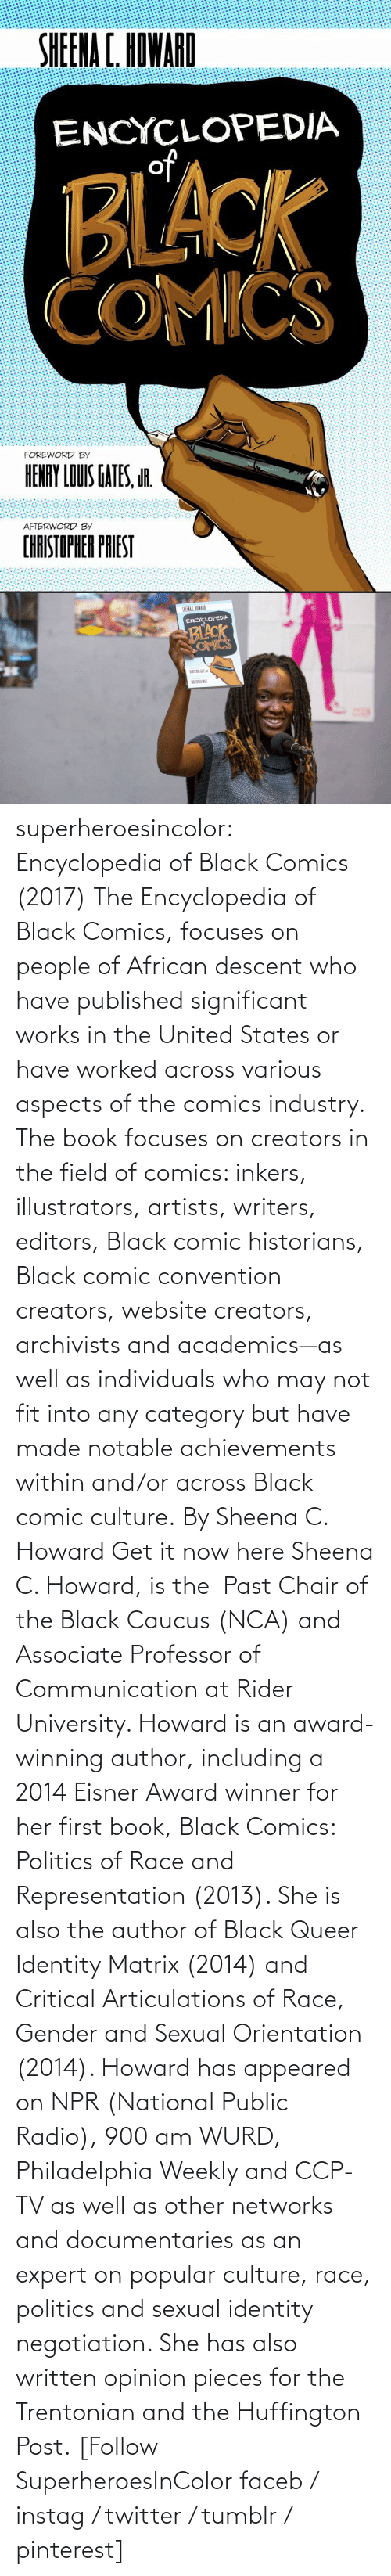 Facebook, Instagram, and Politics: superheroesincolor: Encyclopedia of Black Comics (2017) The Encyclopedia of Black Comics, focuses on people of African descent who have published significant works in the United States or have worked across various aspects of the comics industry. The book focuses on creators in the field of comics: inkers, illustrators, artists, writers, editors, Black comic historians, Black comic convention creators, website creators, archivists and academics—as well as individuals who may not fit into any category but have made notable achievements within and/or across Black comic culture. By Sheena C. Howard Get it now here  Sheena C. Howard, is the Past Chair of the Black Caucus (NCA) and Associate Professor of Communication at Rider University. Howard is an award-winning author, including a 2014 Eisner Award winner for her first book, Black Comics: Politics of Race and Representation (2013). She is also the author of Black Queer Identity Matrix (2014) and Critical Articulations of Race, Gender and Sexual Orientation (2014). Howard has appeared on NPR (National Public Radio), 900 am WURD, Philadelphia Weekly and CCP-TV as well as other networks and documentaries as an expert on popular culture, race, politics and sexual identity negotiation. She has also written opinion pieces for the Trentonian and the Huffington Post.   [Follow SuperheroesInColor faceb / instag / twitter / tumblr / pinterest]